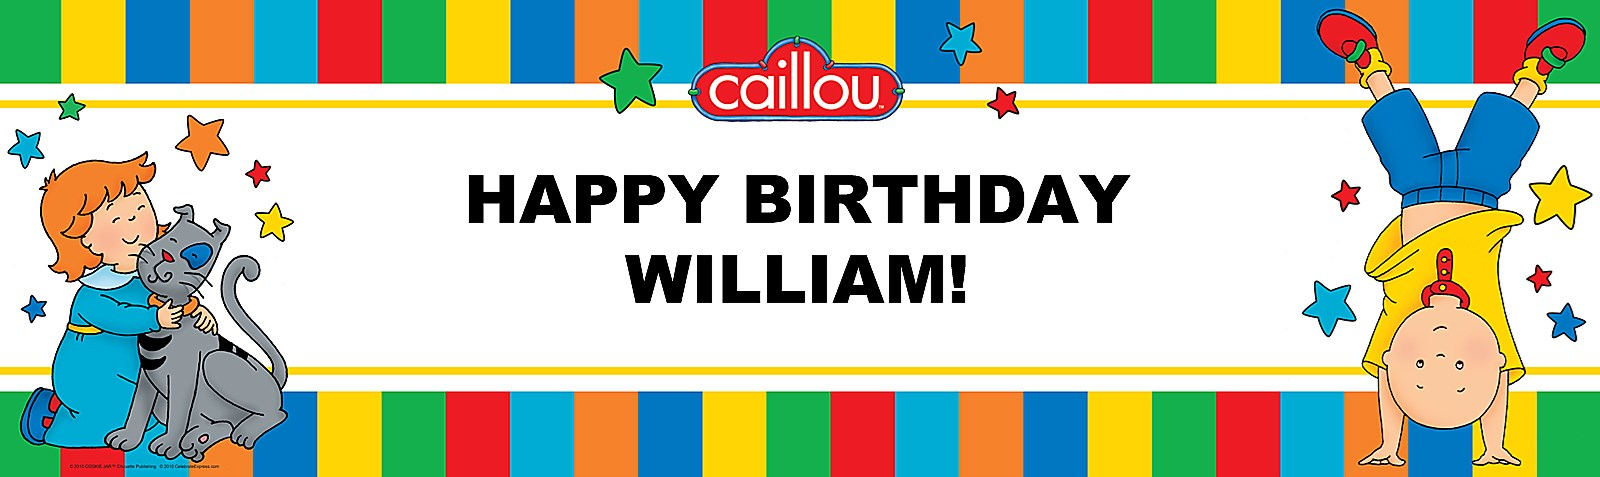 caillou personalized vinyl banner birthdayexpress com